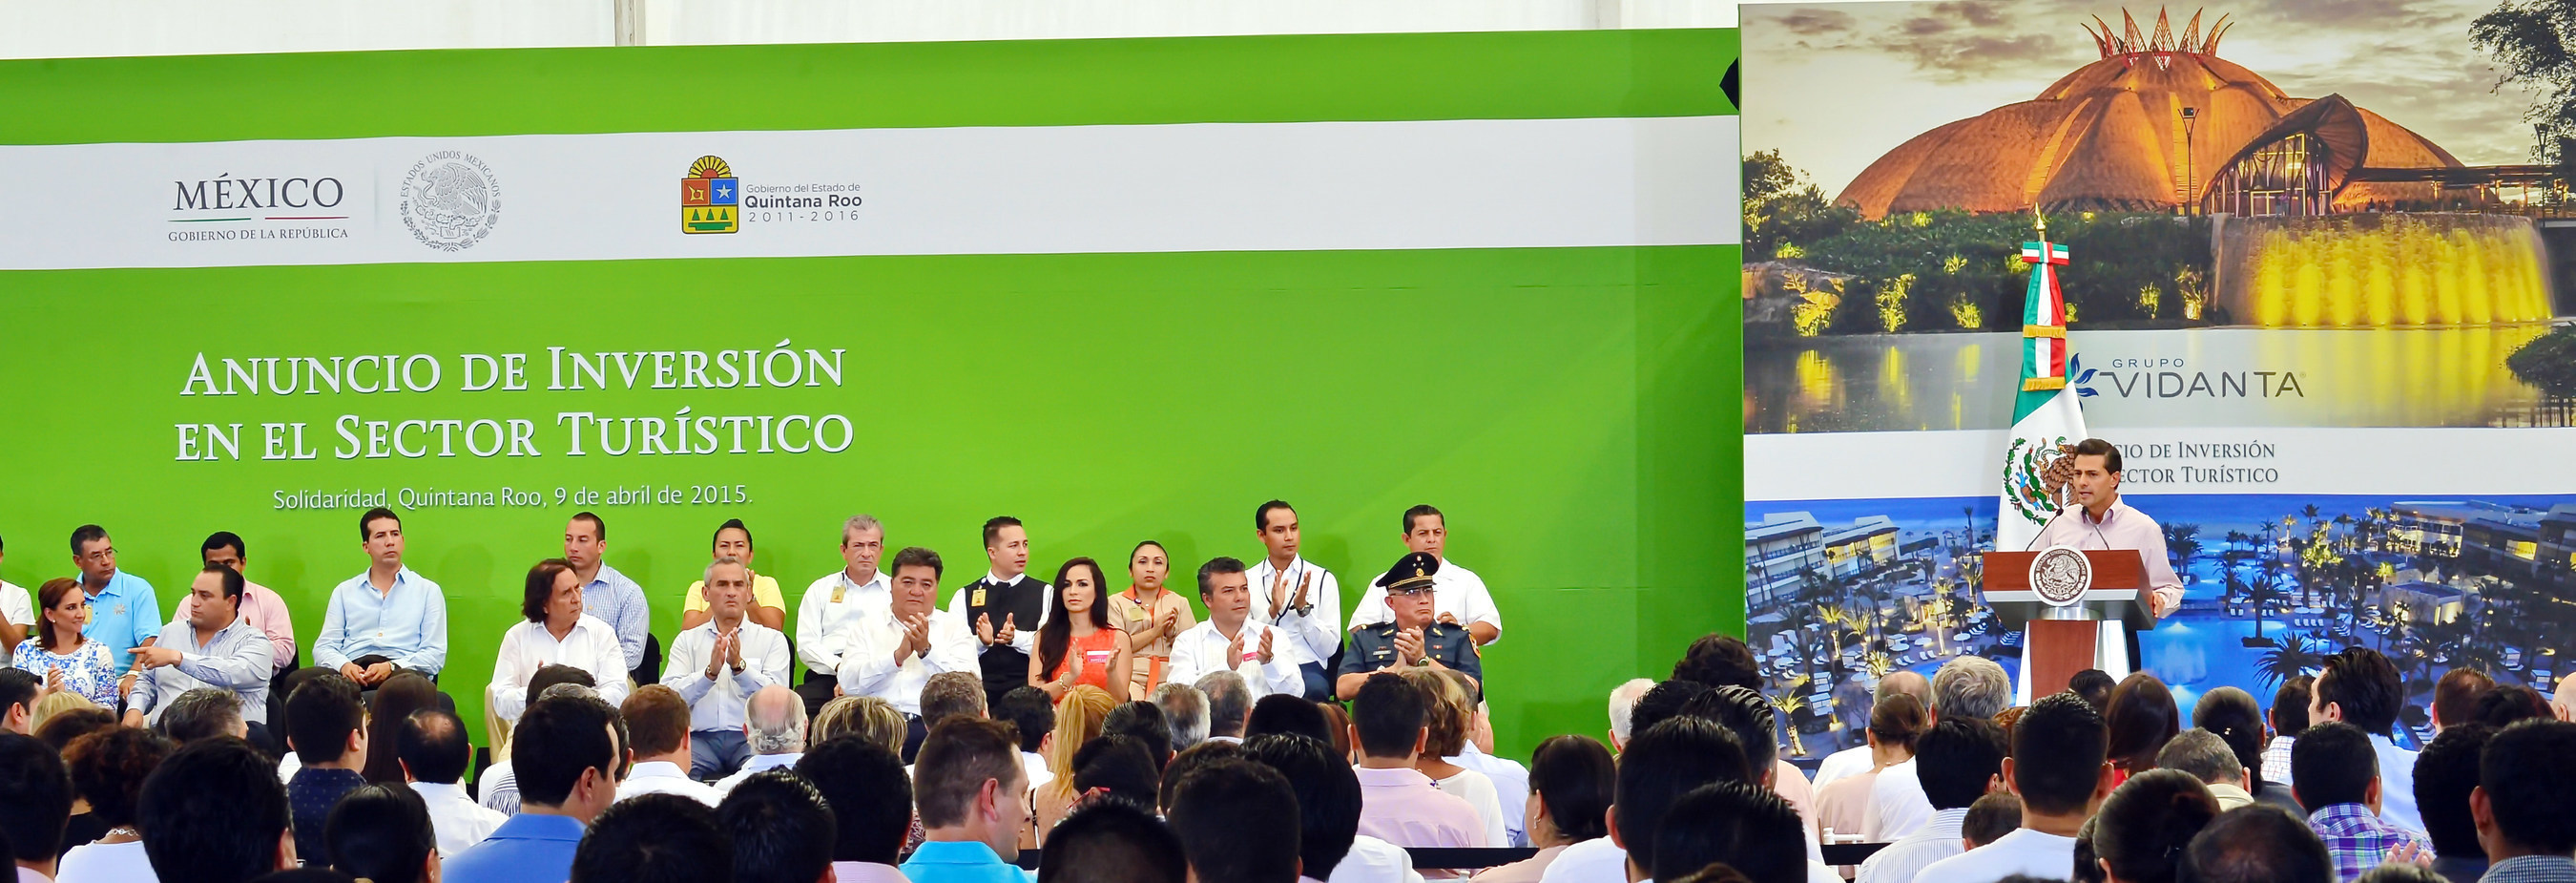 President Enrique Pena Nieto of Mexico praises the investment in tourism by Grupo Vidanta and Daniel Chavez Moran during an April 9, 2015, press conference at the Vidanta Theater in Riviera Maya.